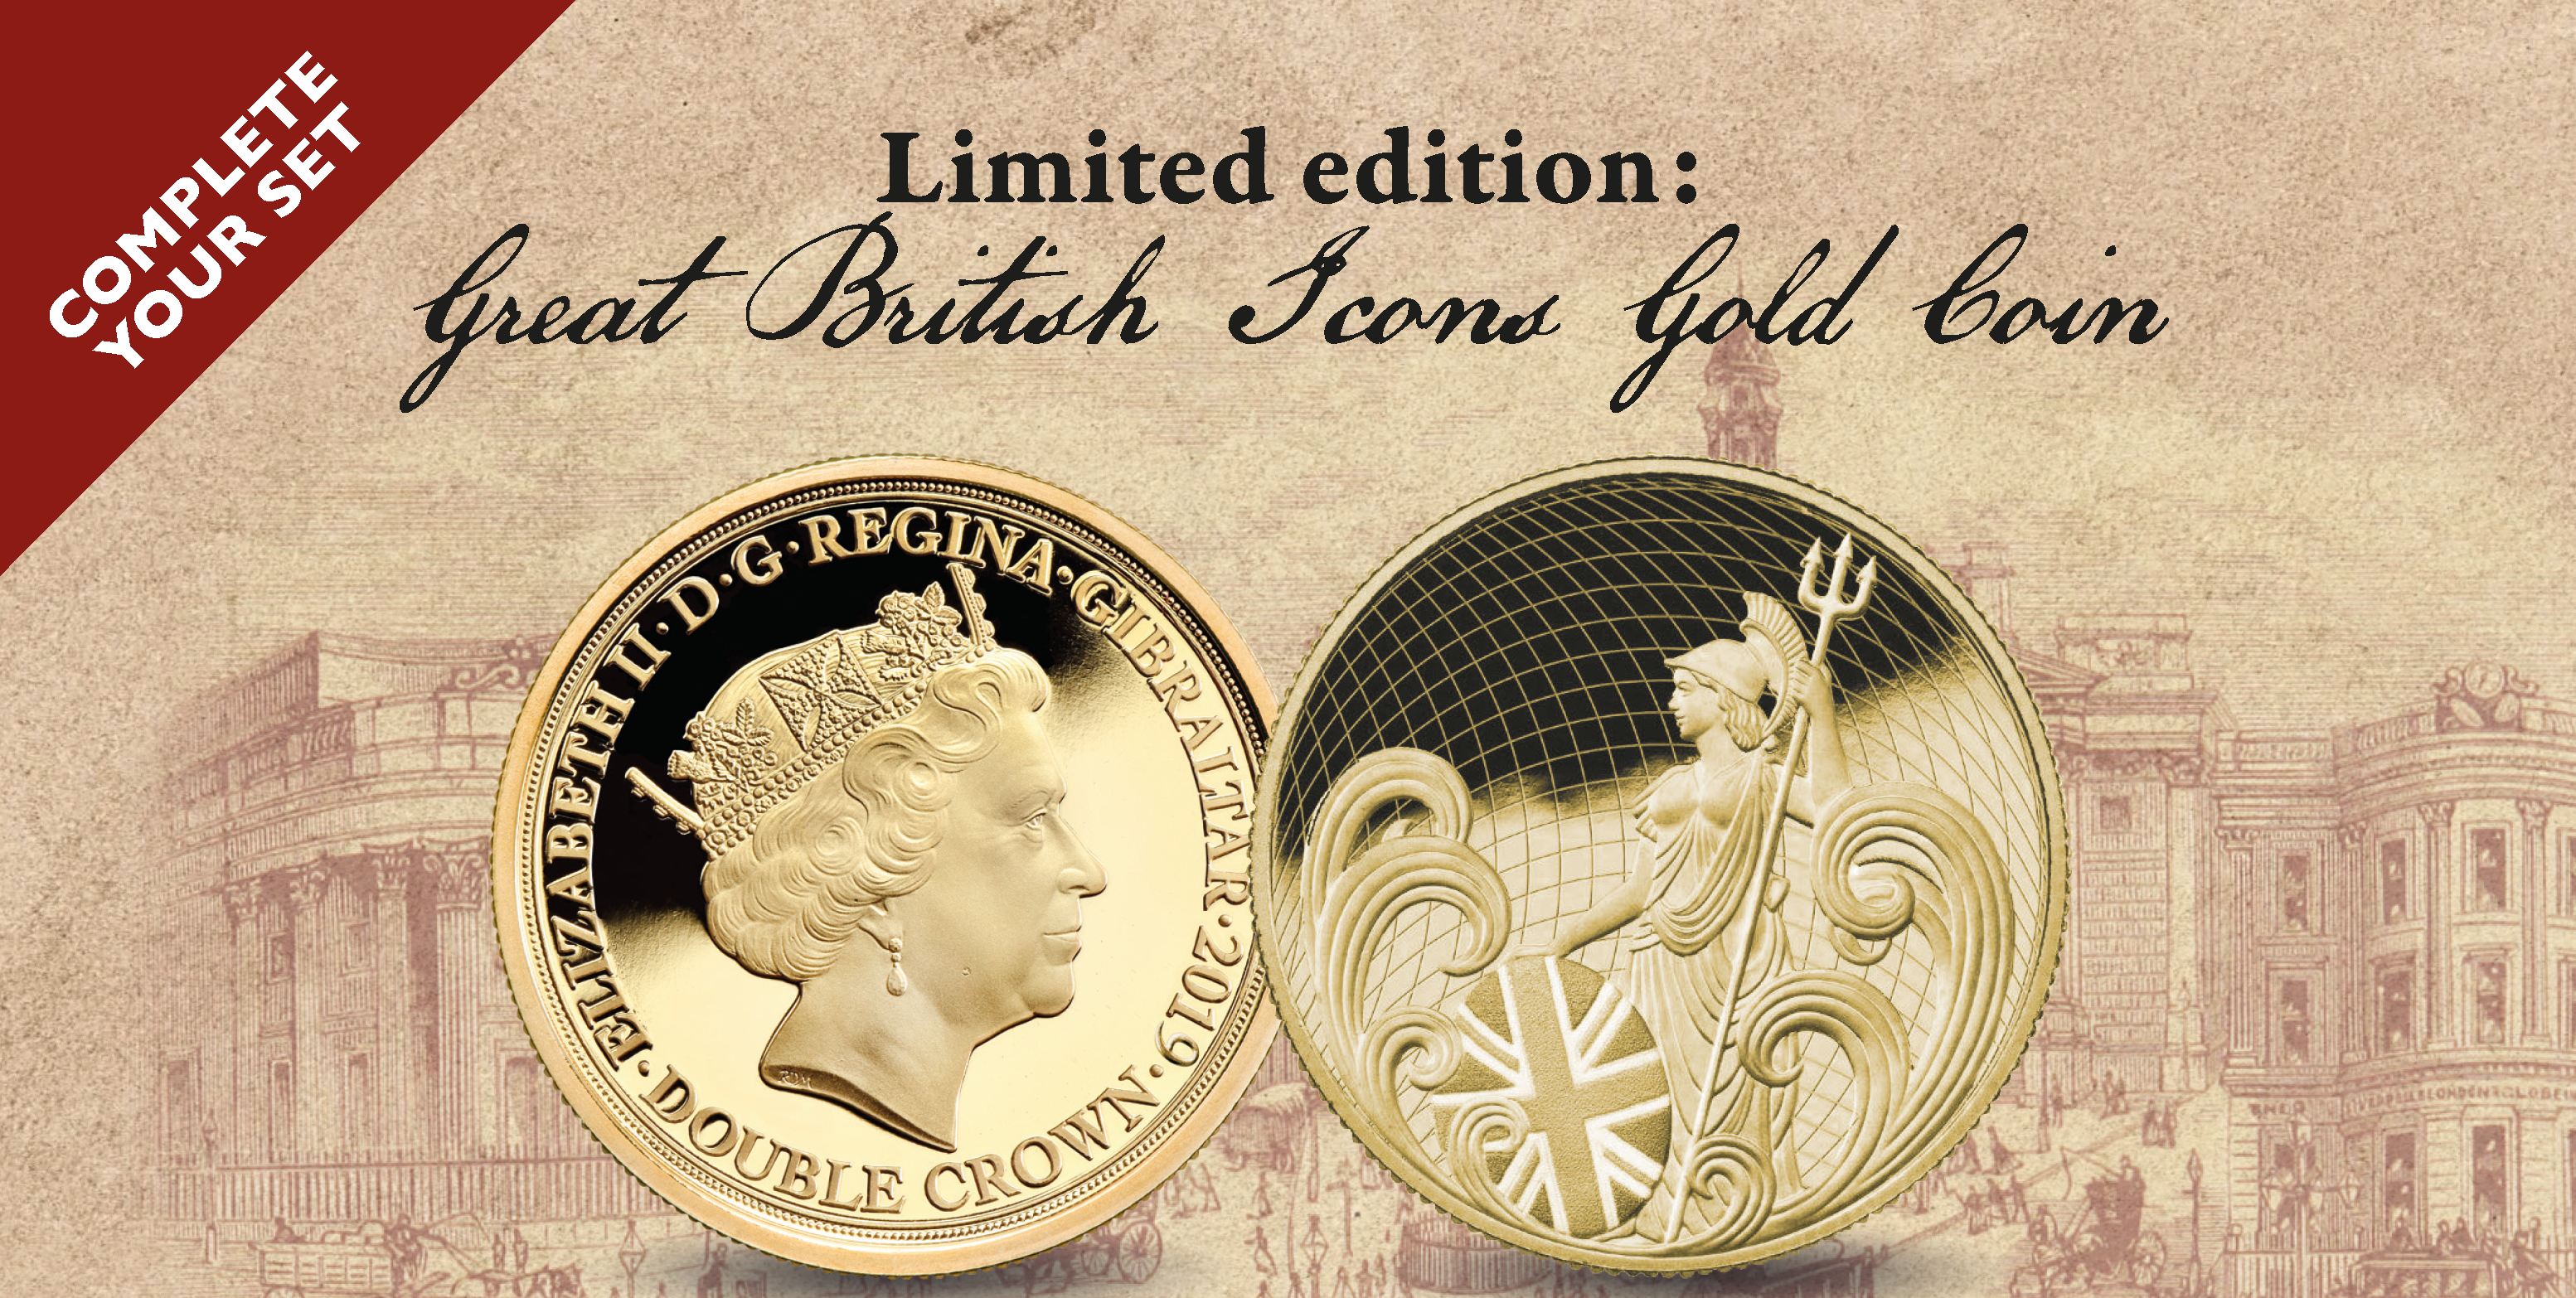 Great British Icons Gold Coin